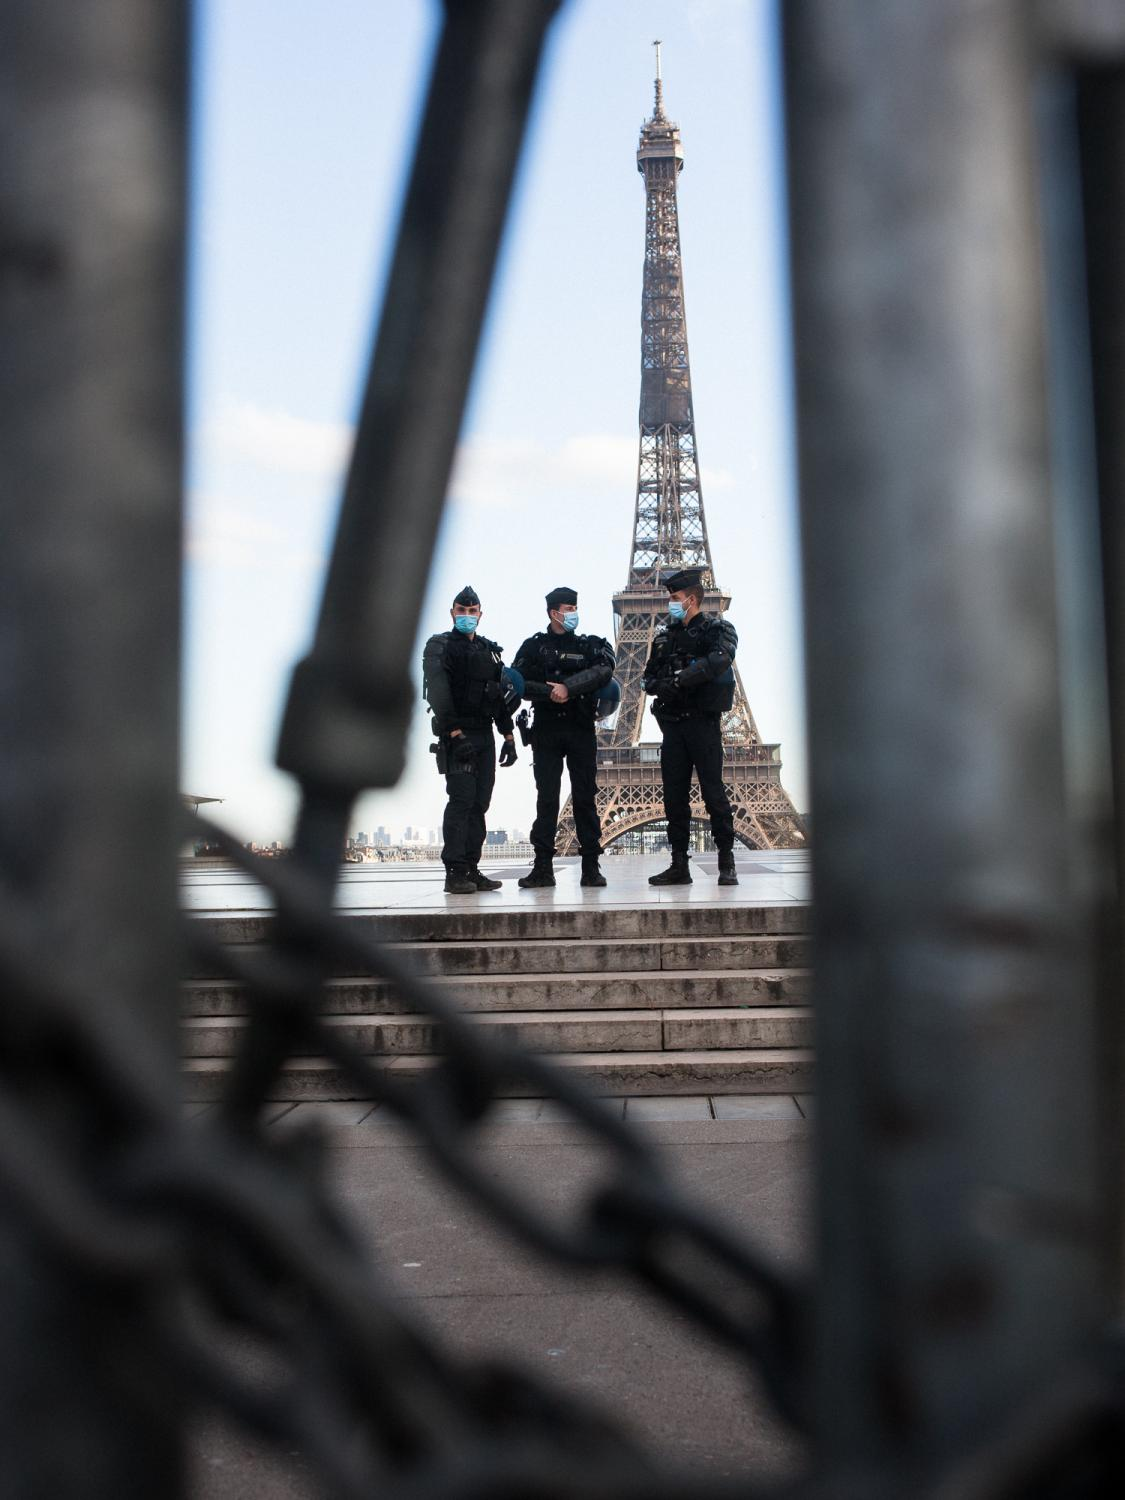 """From the Human Rights Square and behind their barricades, policemen are watching the rally against the controversial so called """"Sécurité Globale"""" (Global Security) bill. Trocadero Square, Paris, France, the 21st of November 2020."""